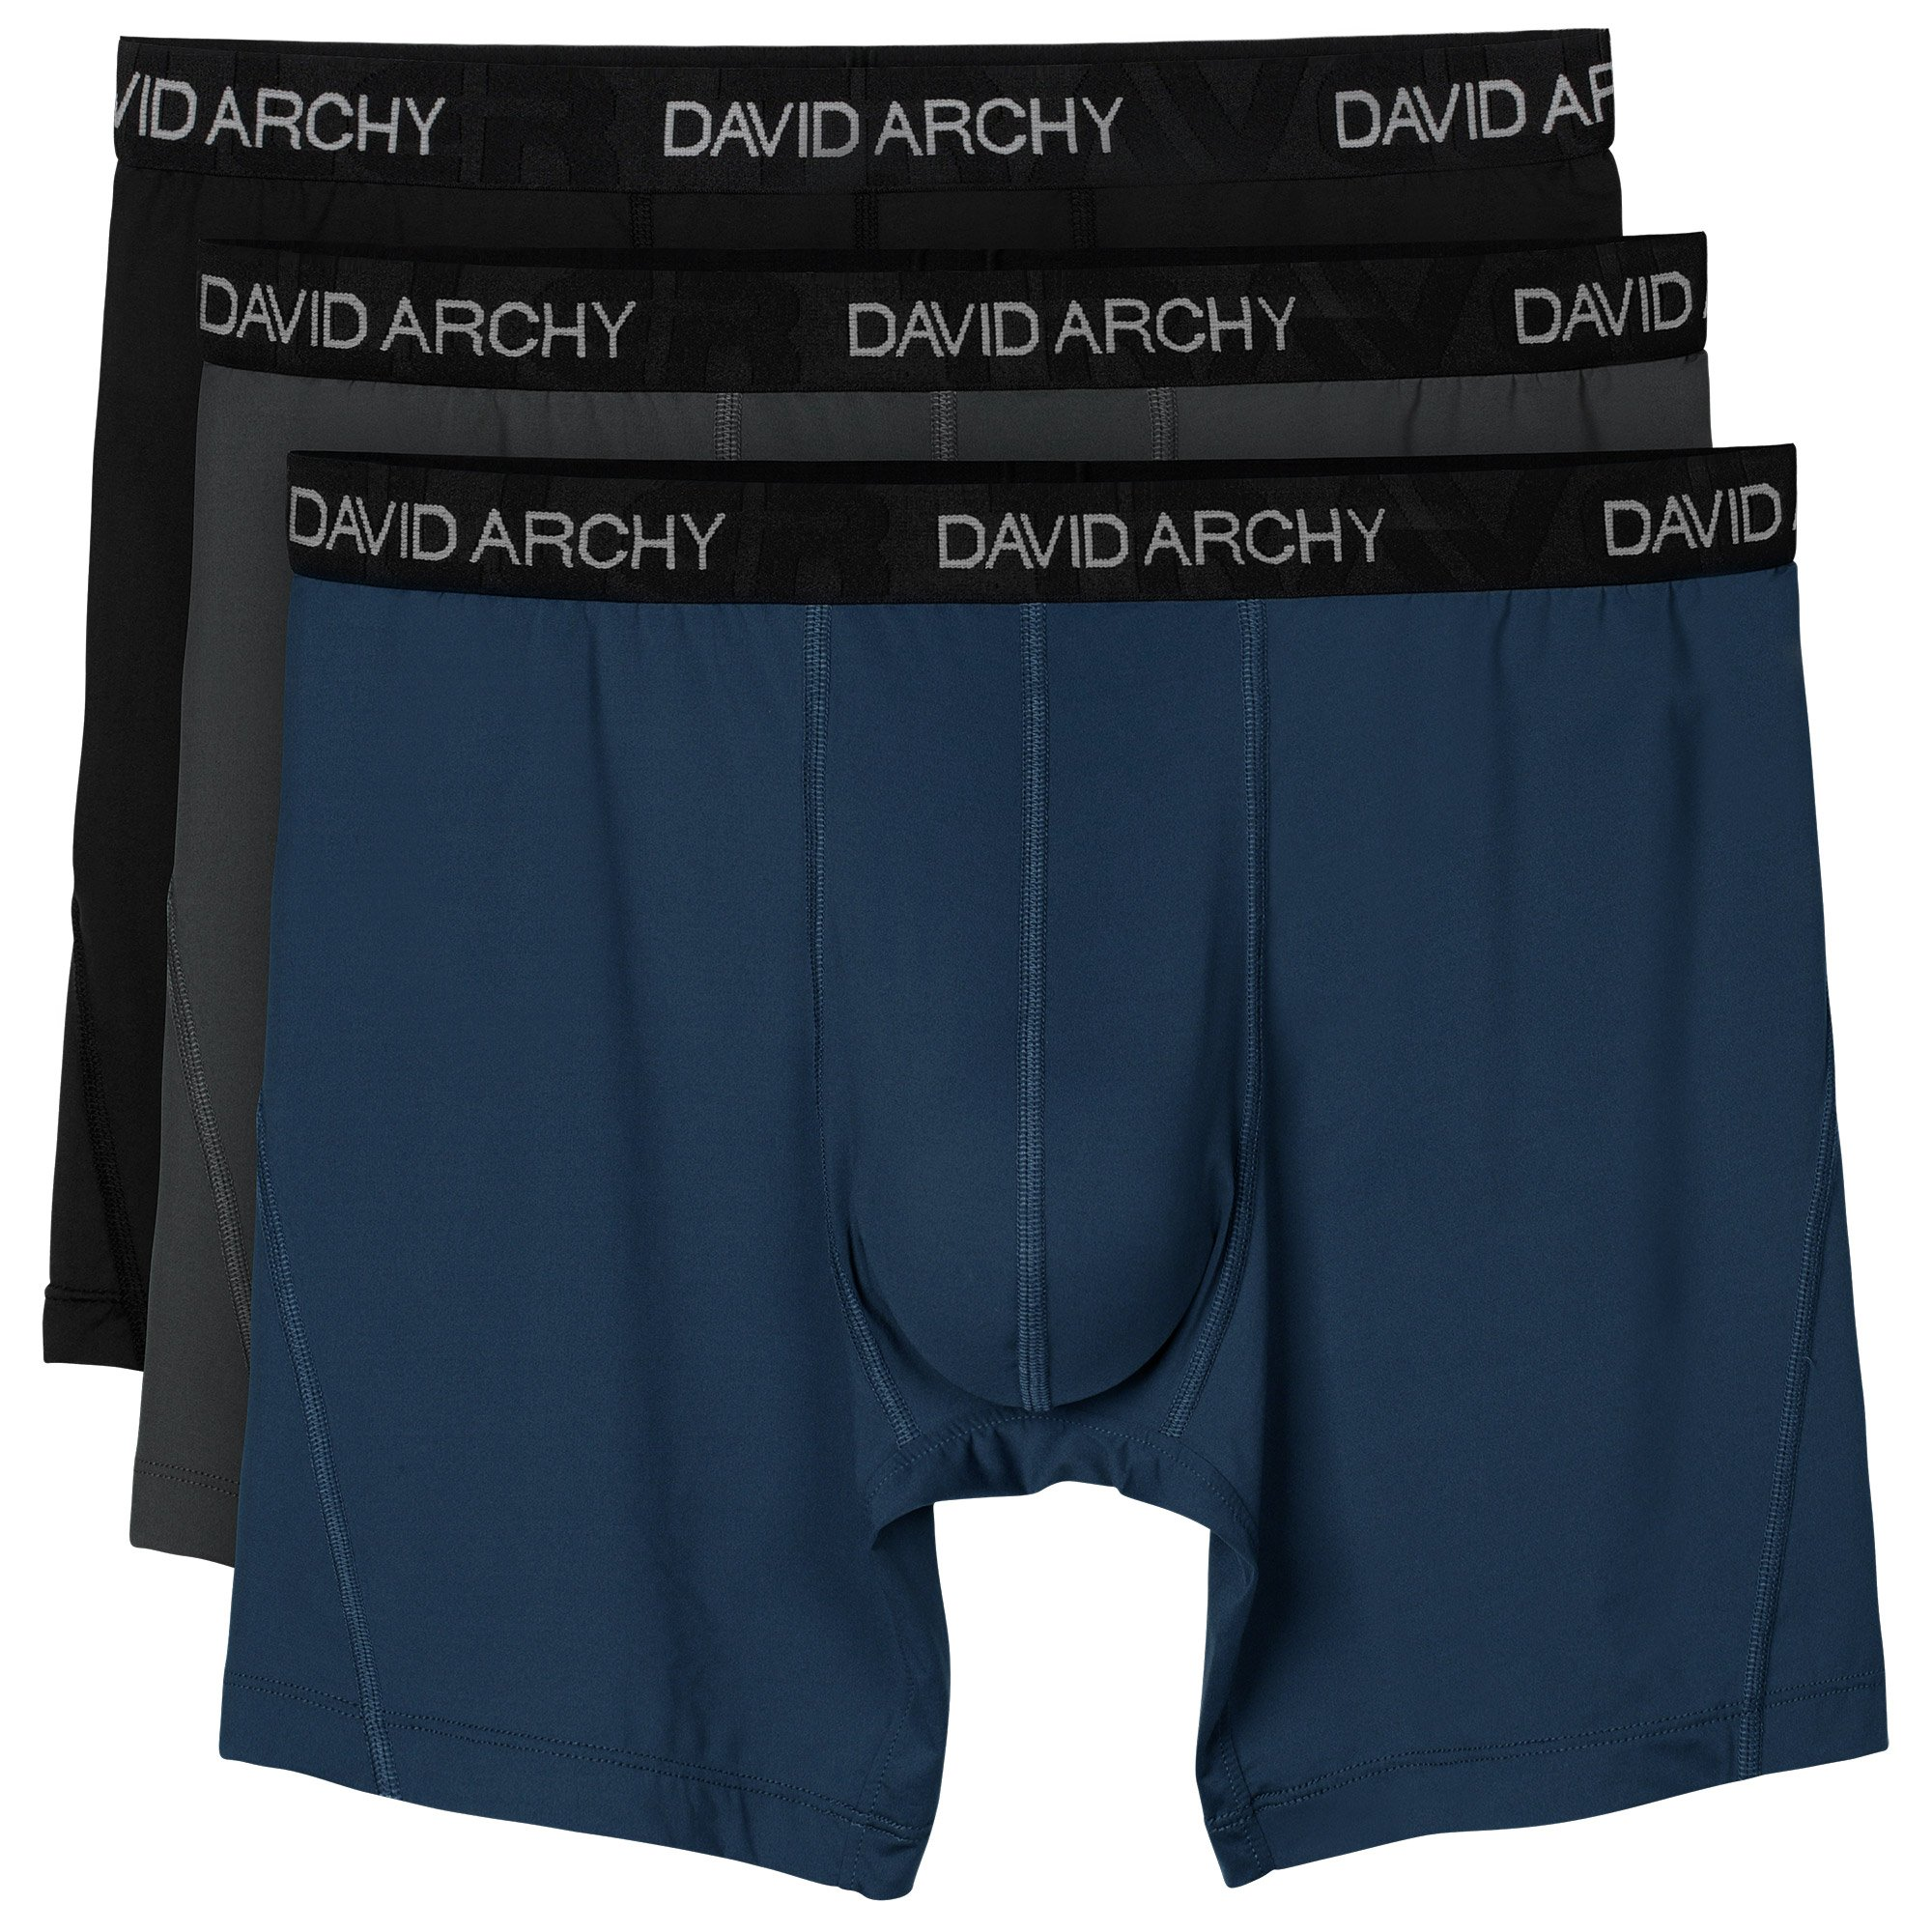 David Archy 3 Pack Men's Ultra Fast Dry Performance Boxer Briefs (L, Black/Dark Gray/Navy Blue-Solid)